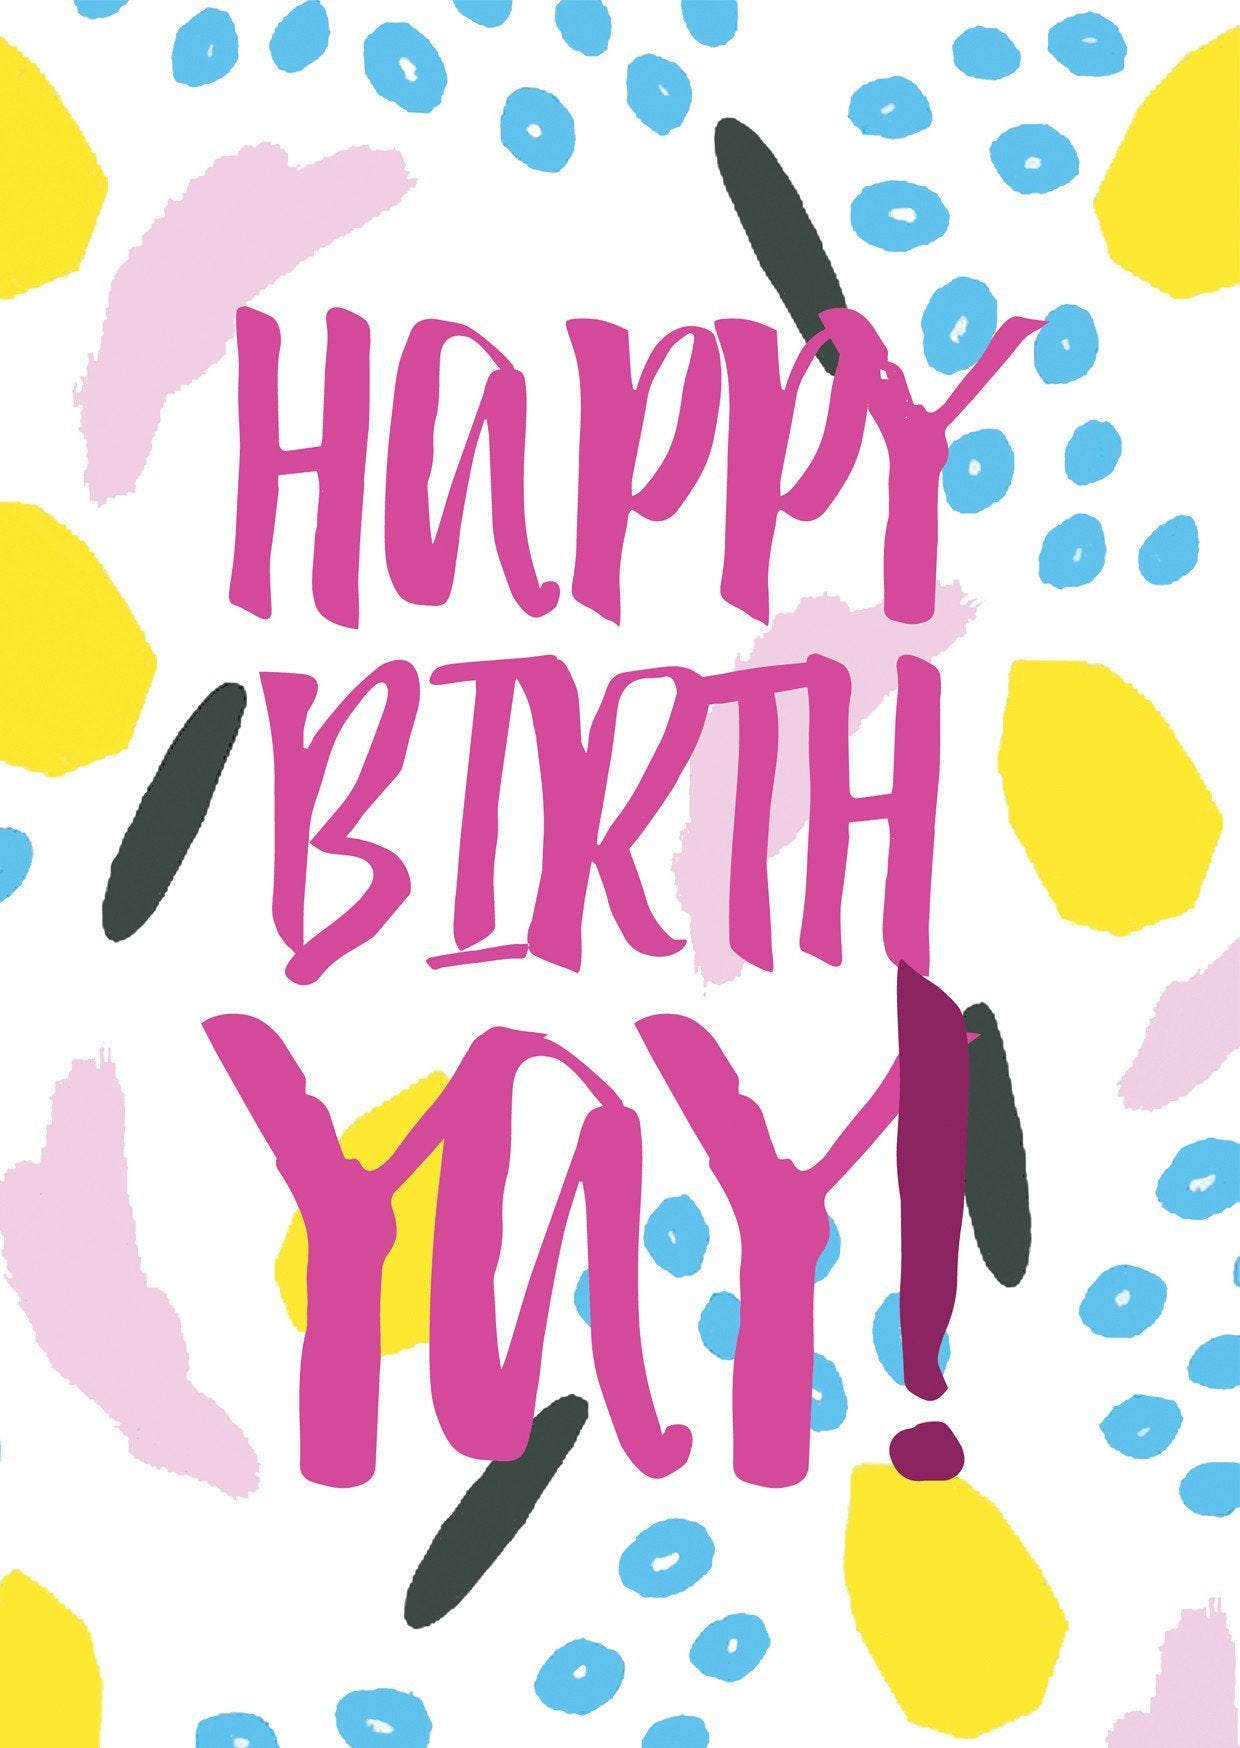 Happy Birthyay! Greeting Card - Postcards - The Paper Happiness - Naiise